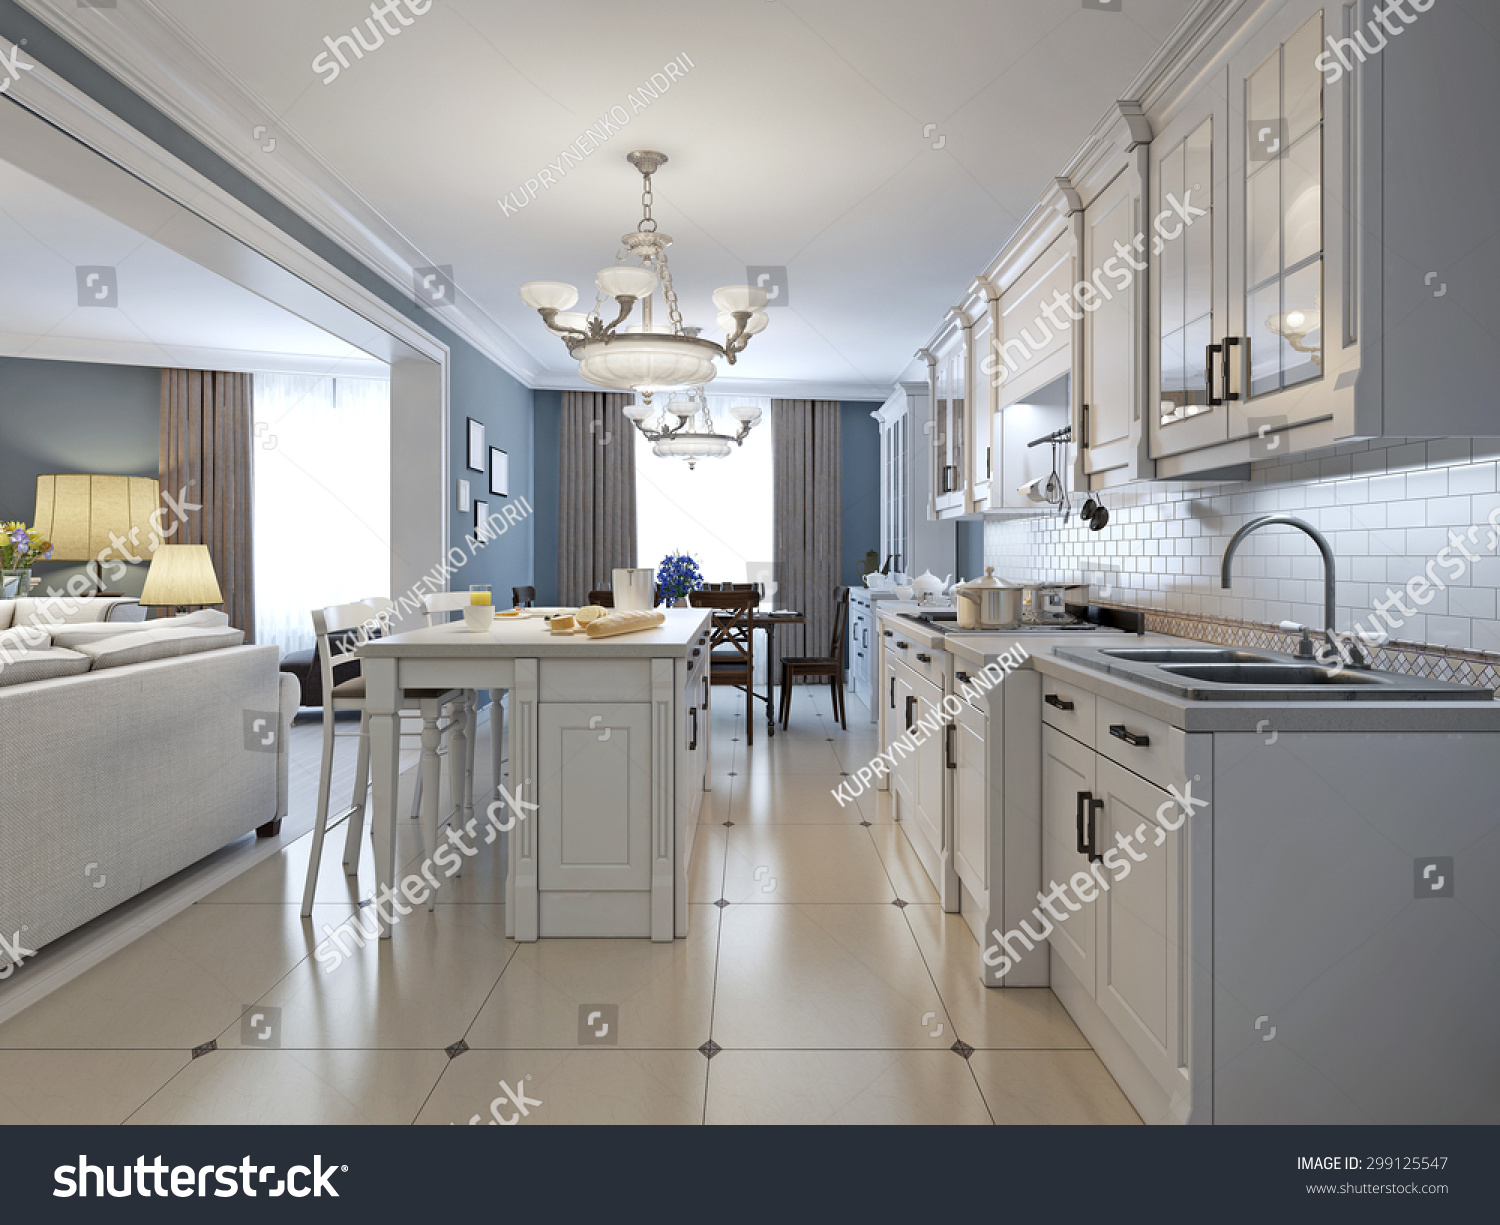 White Kitchen Stainless Steel Appliances kitchen stainless steel appliances white cabinets stock